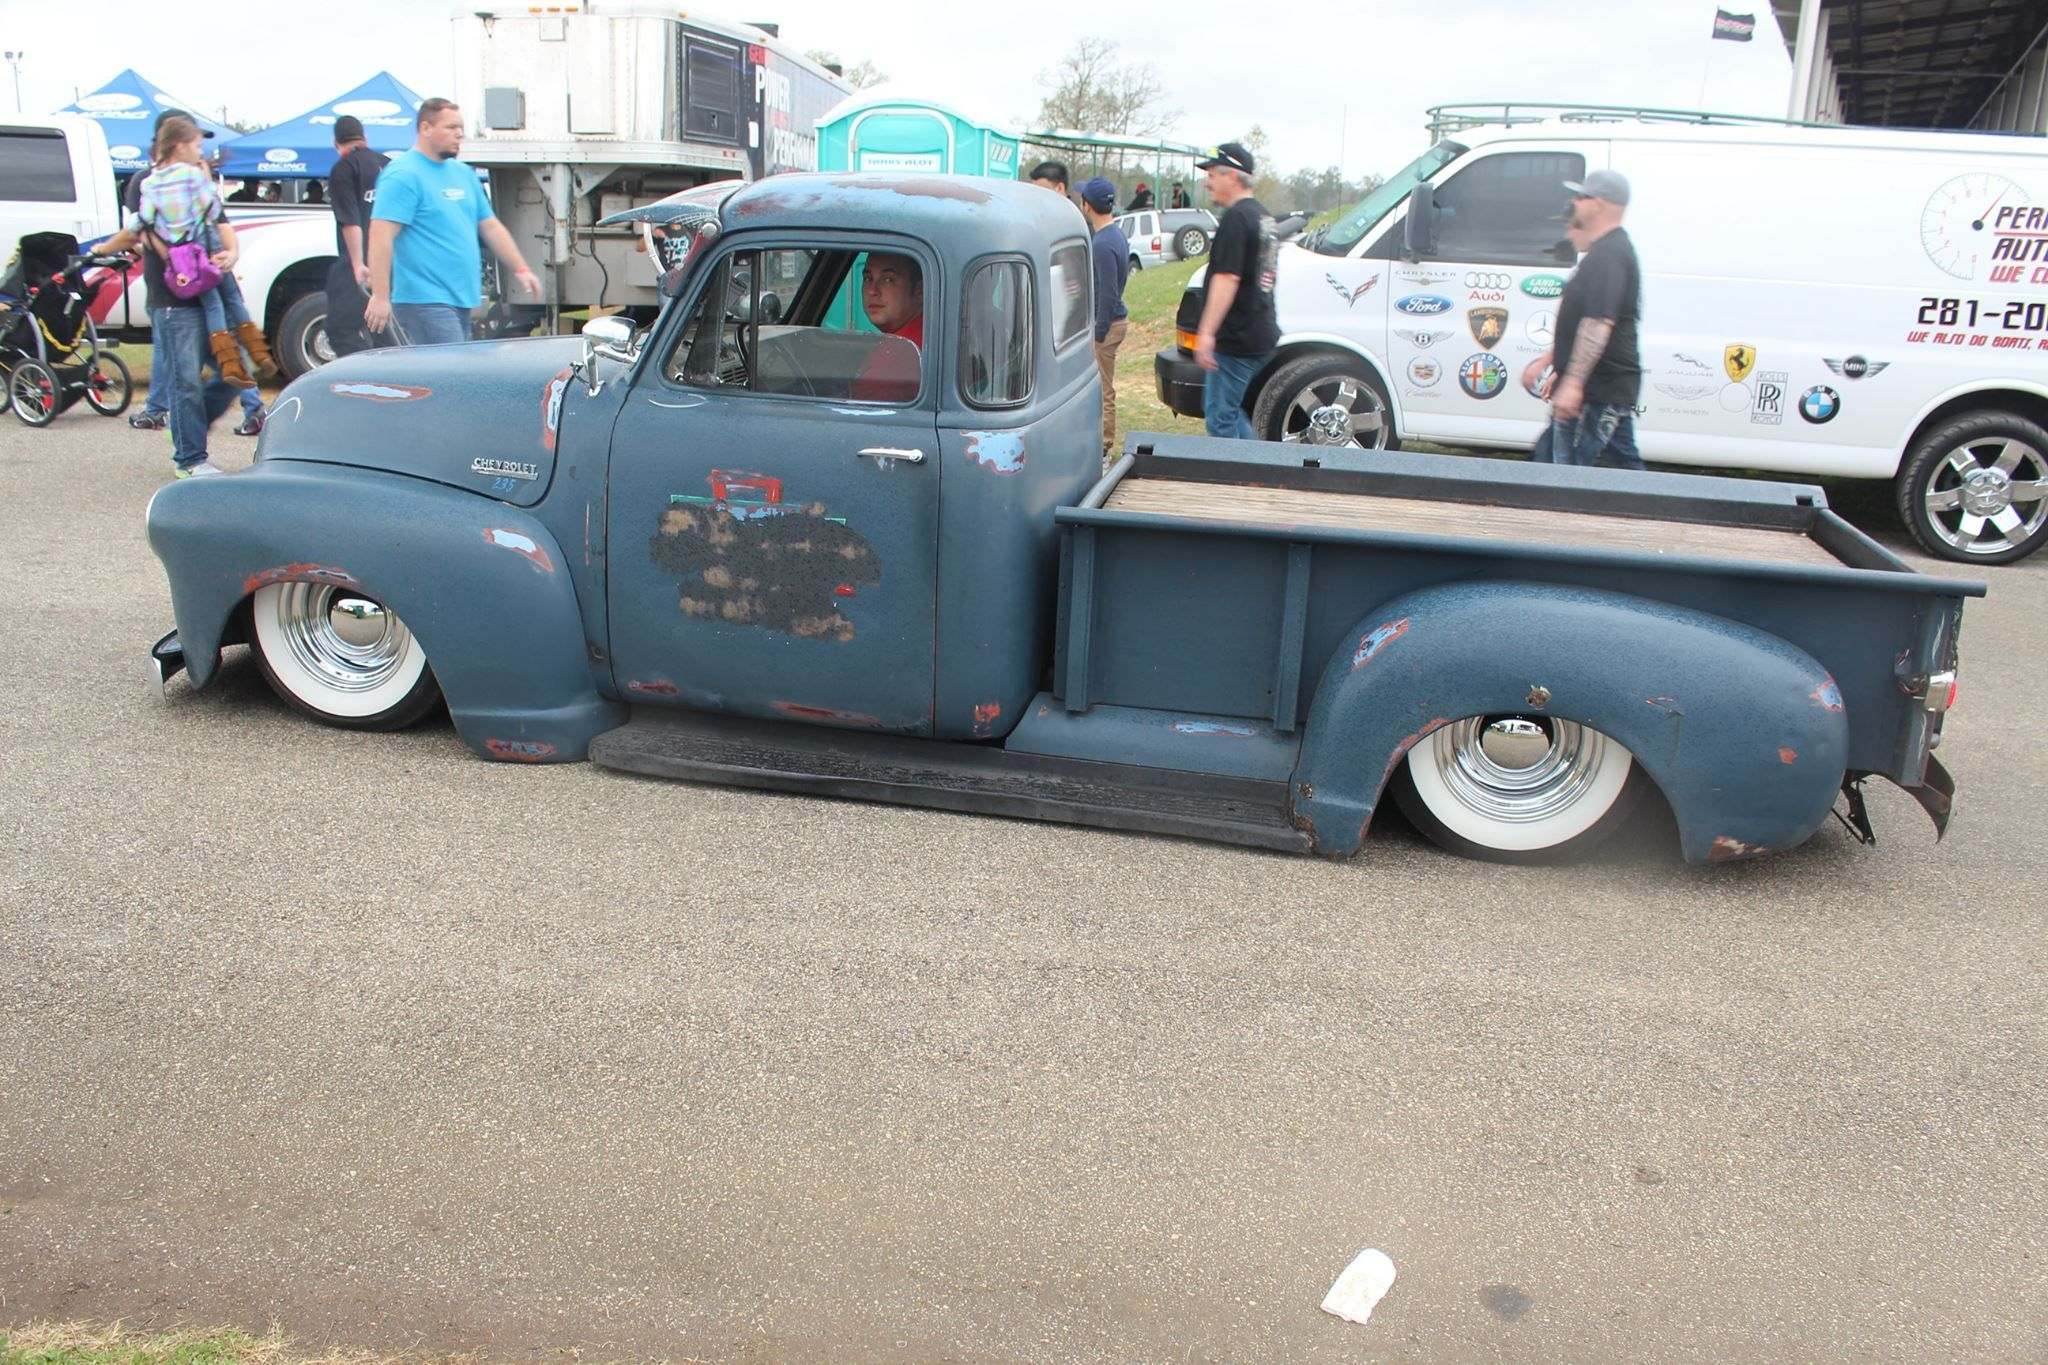 Chevrolet advance design five window pickup 1953 in a patina steal blue finish that looks like it might have been an old navy display truck